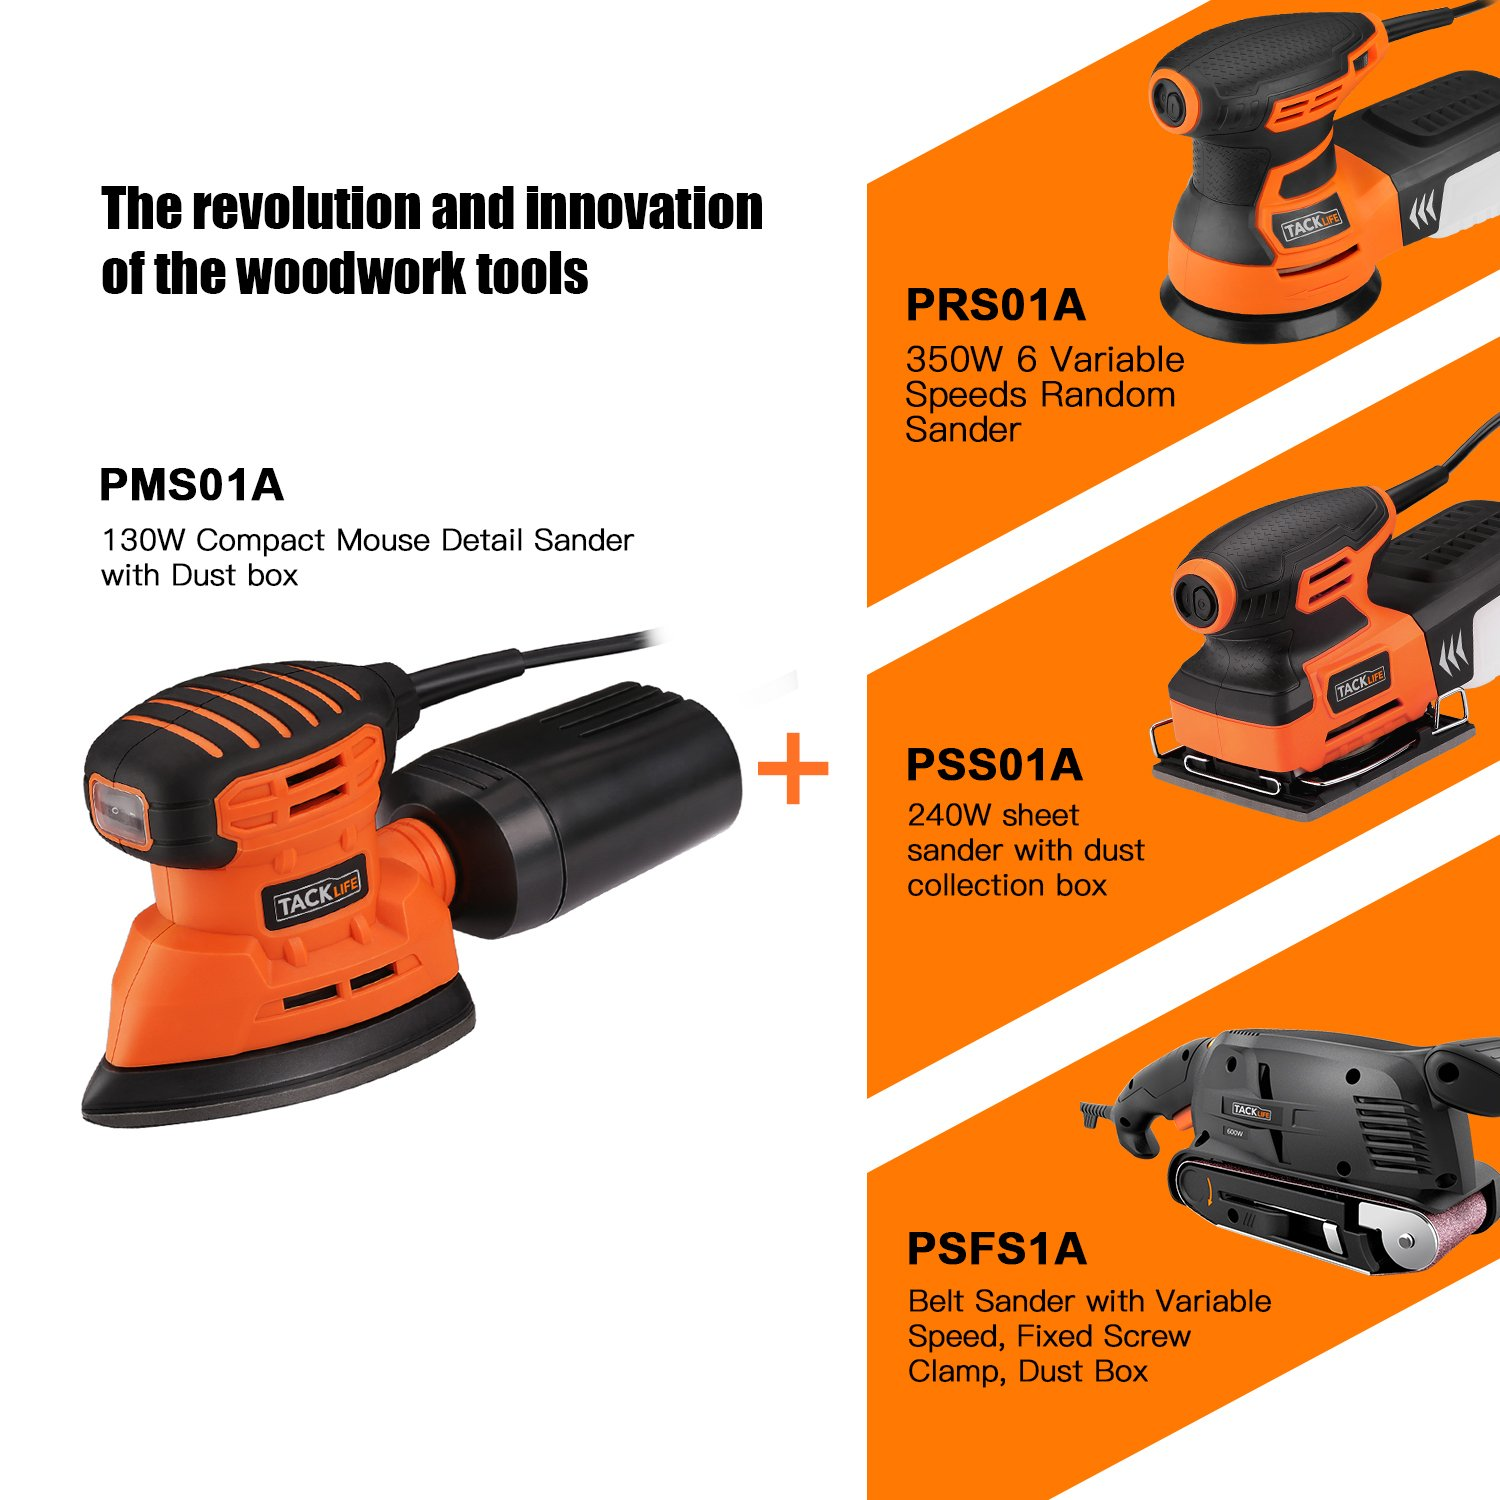 Mouse Detail Sander with 12Pcs Sanderpaper, 12000 OPM Sander with Dust Collection System For Tight Spaces Sanding in Home Decoration, DIY by TACKLIFE (Image #7)